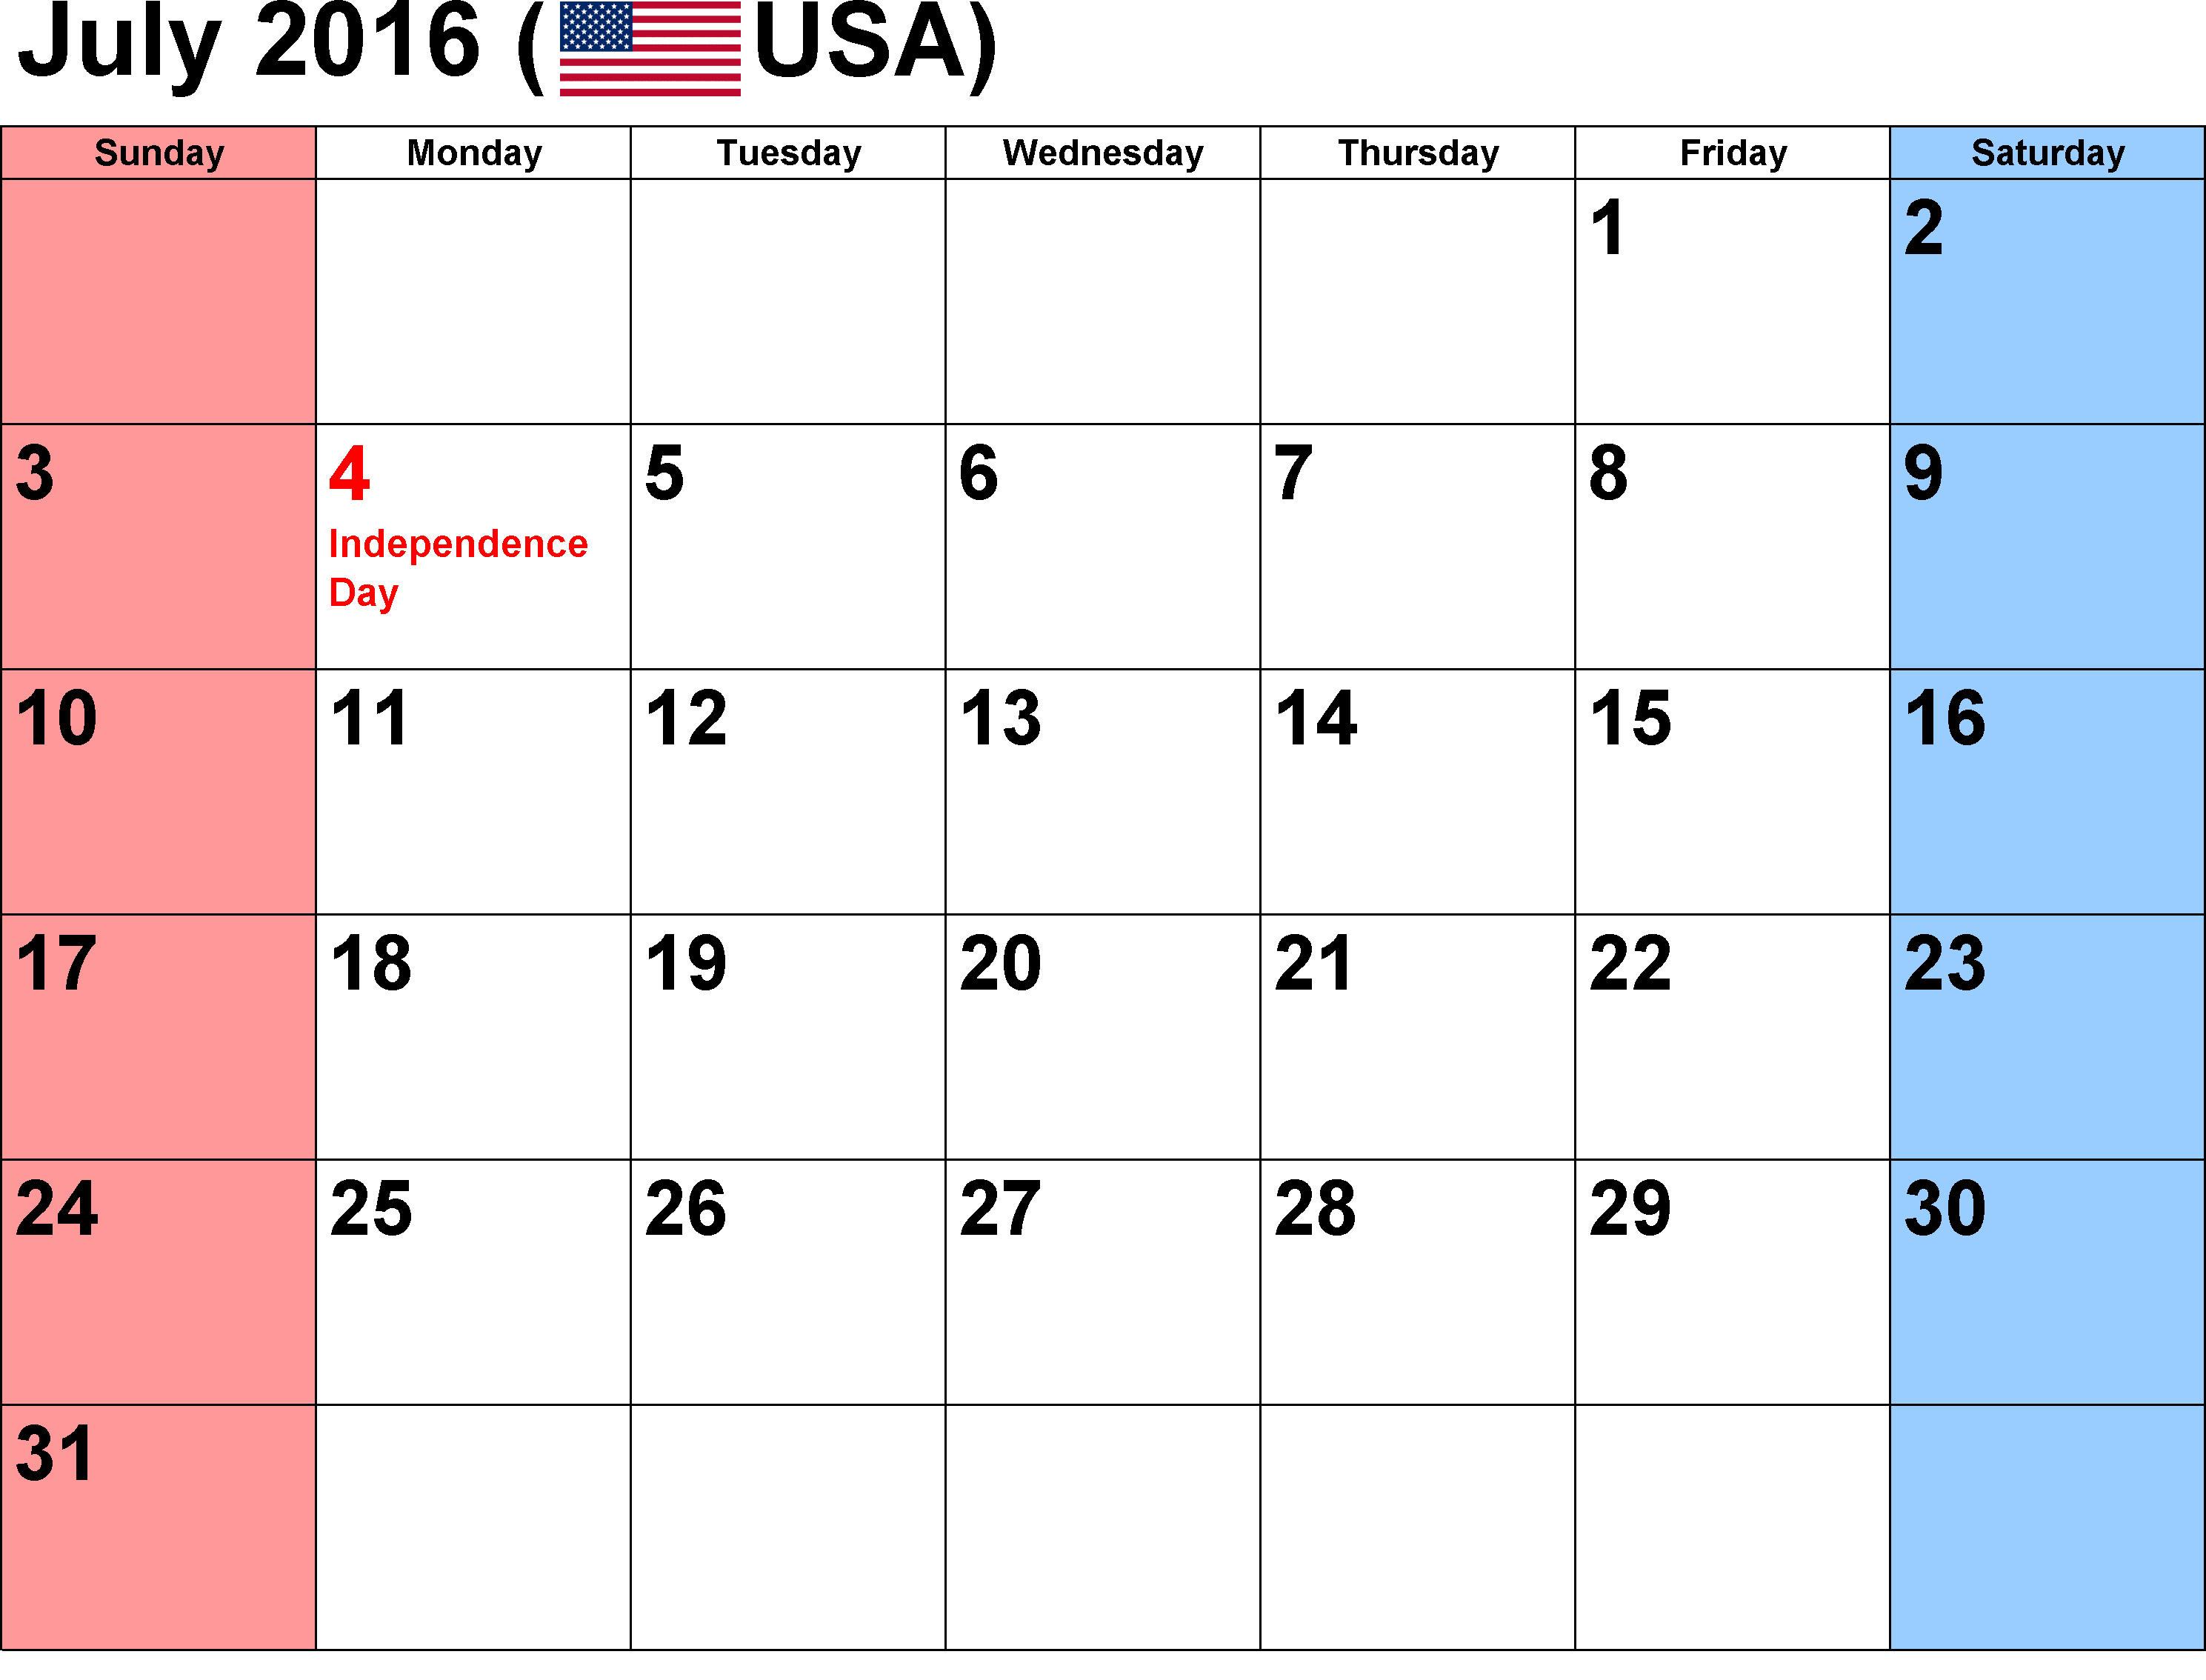 2016 Calendar July 2016 Calendar with Holidays, July 2016 Calendar USA ...